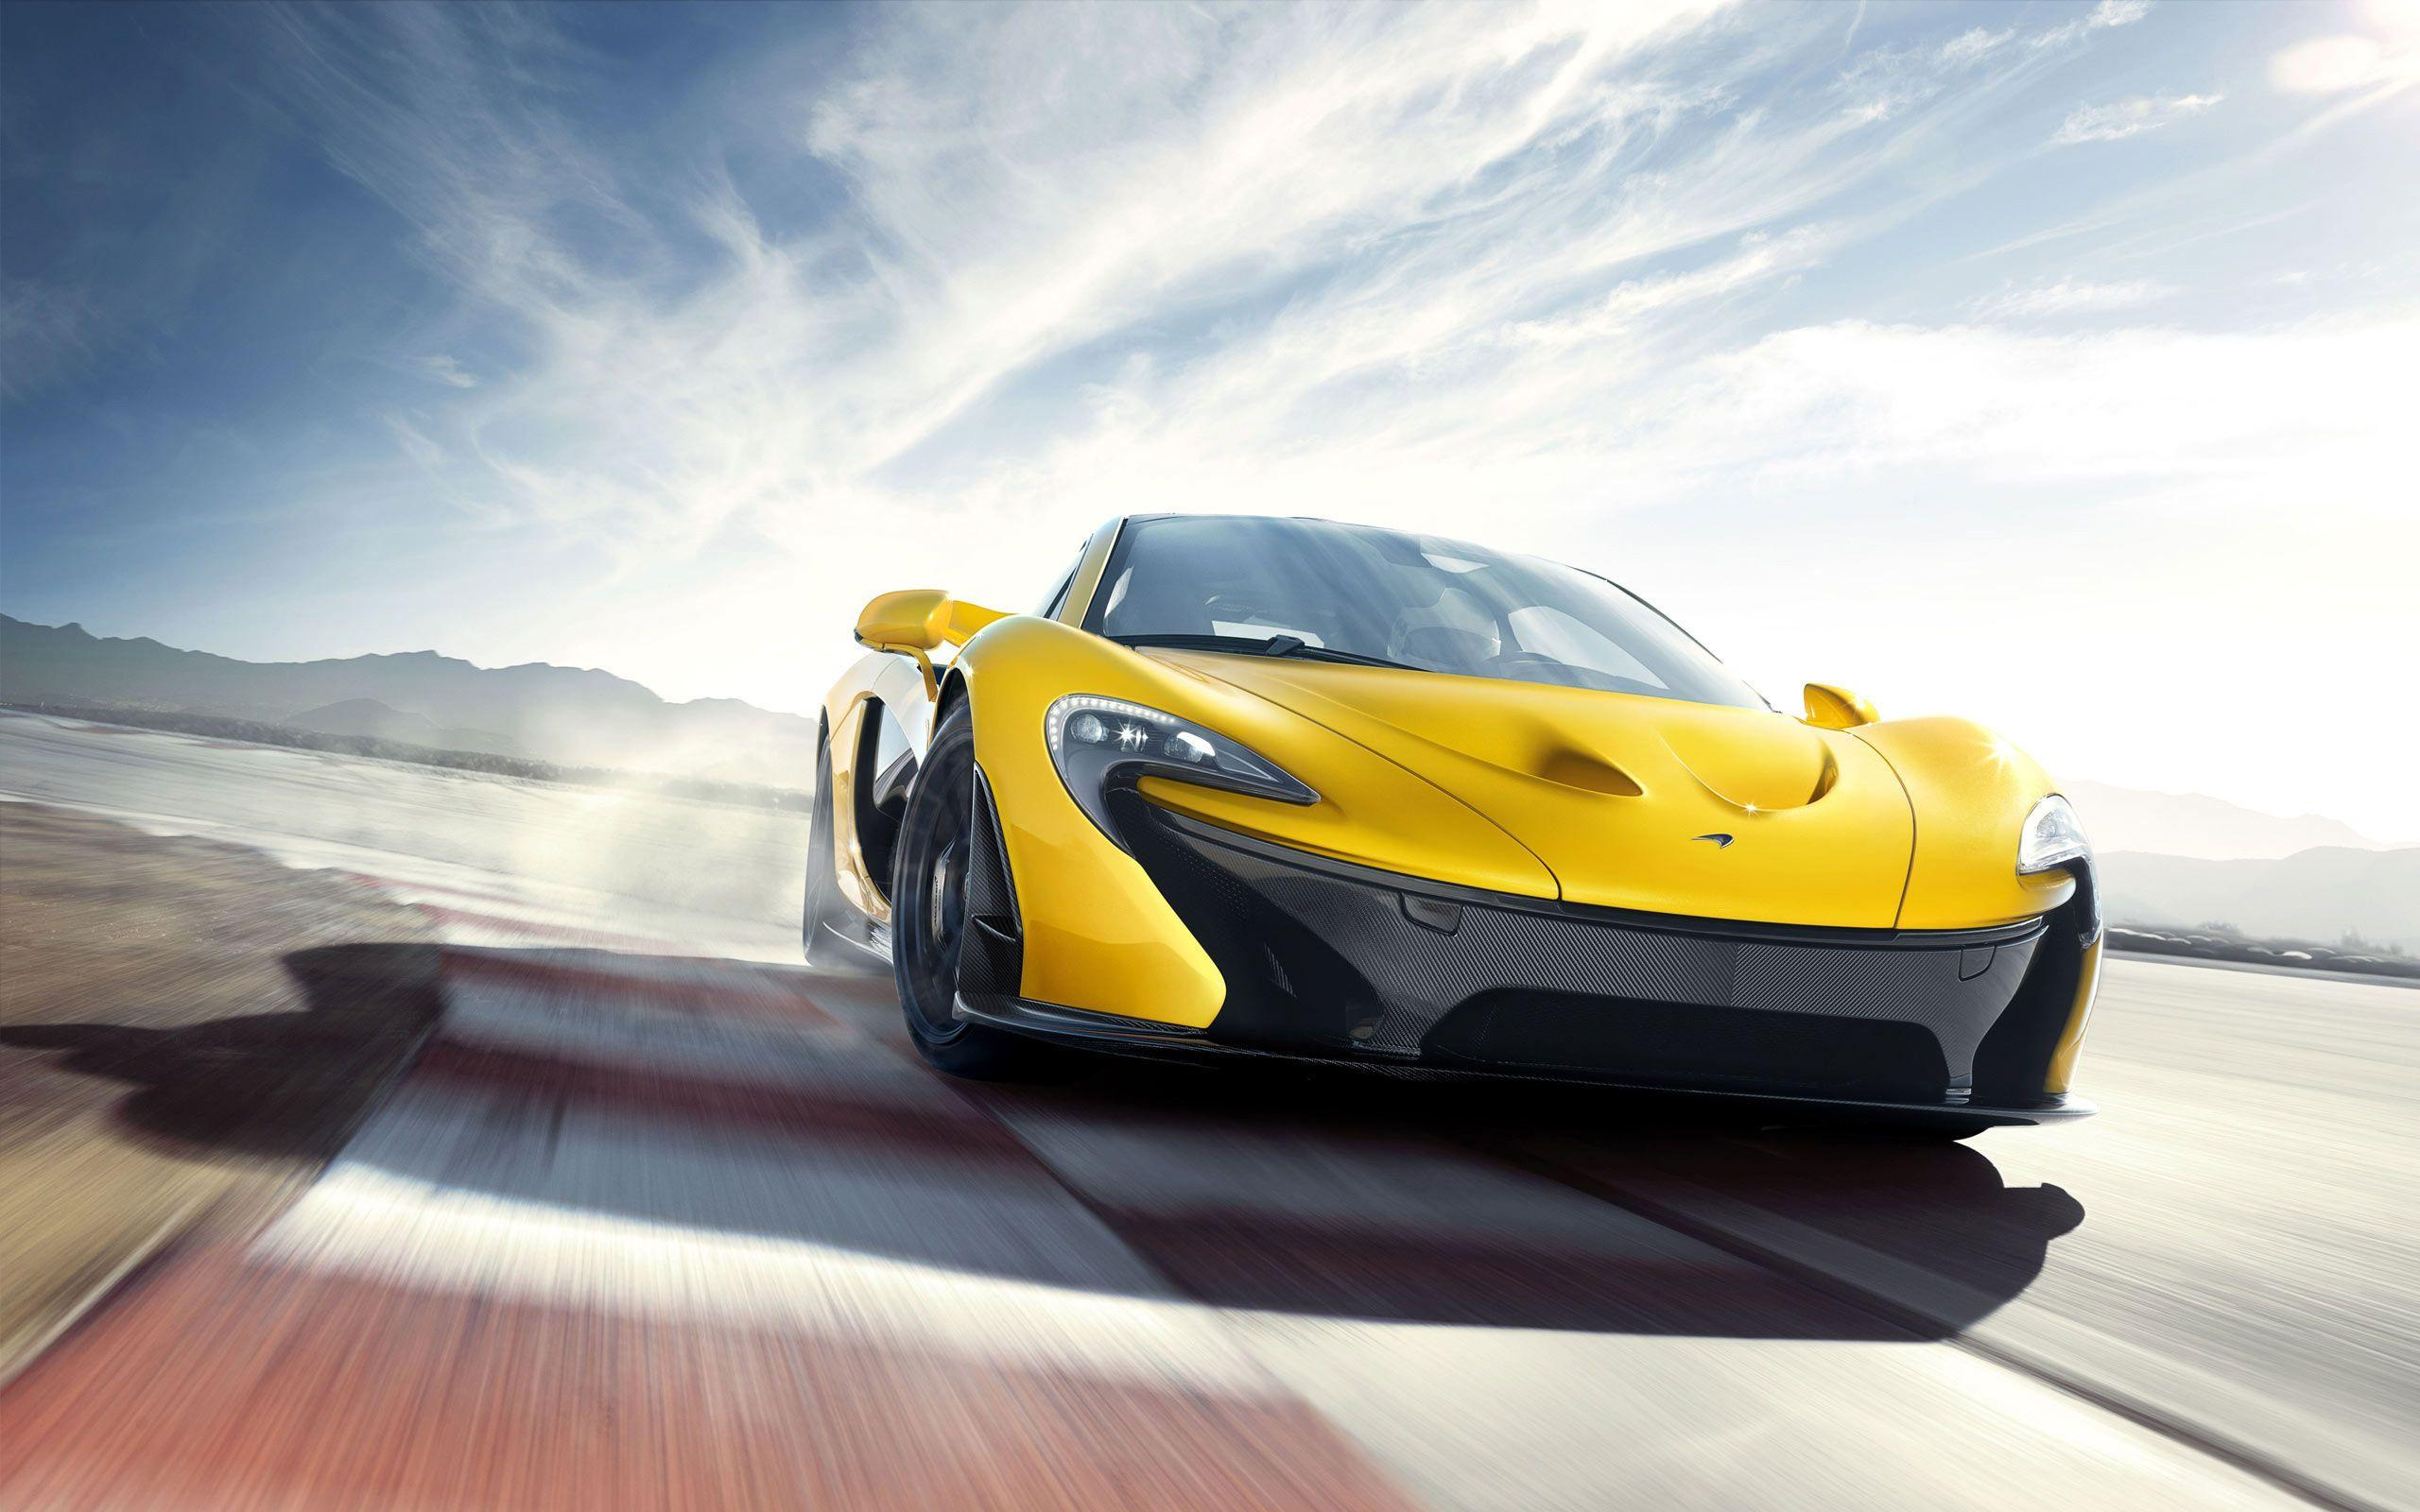 Download McLaren P1 wallpapers HD Widescreen Wallpapers from the above